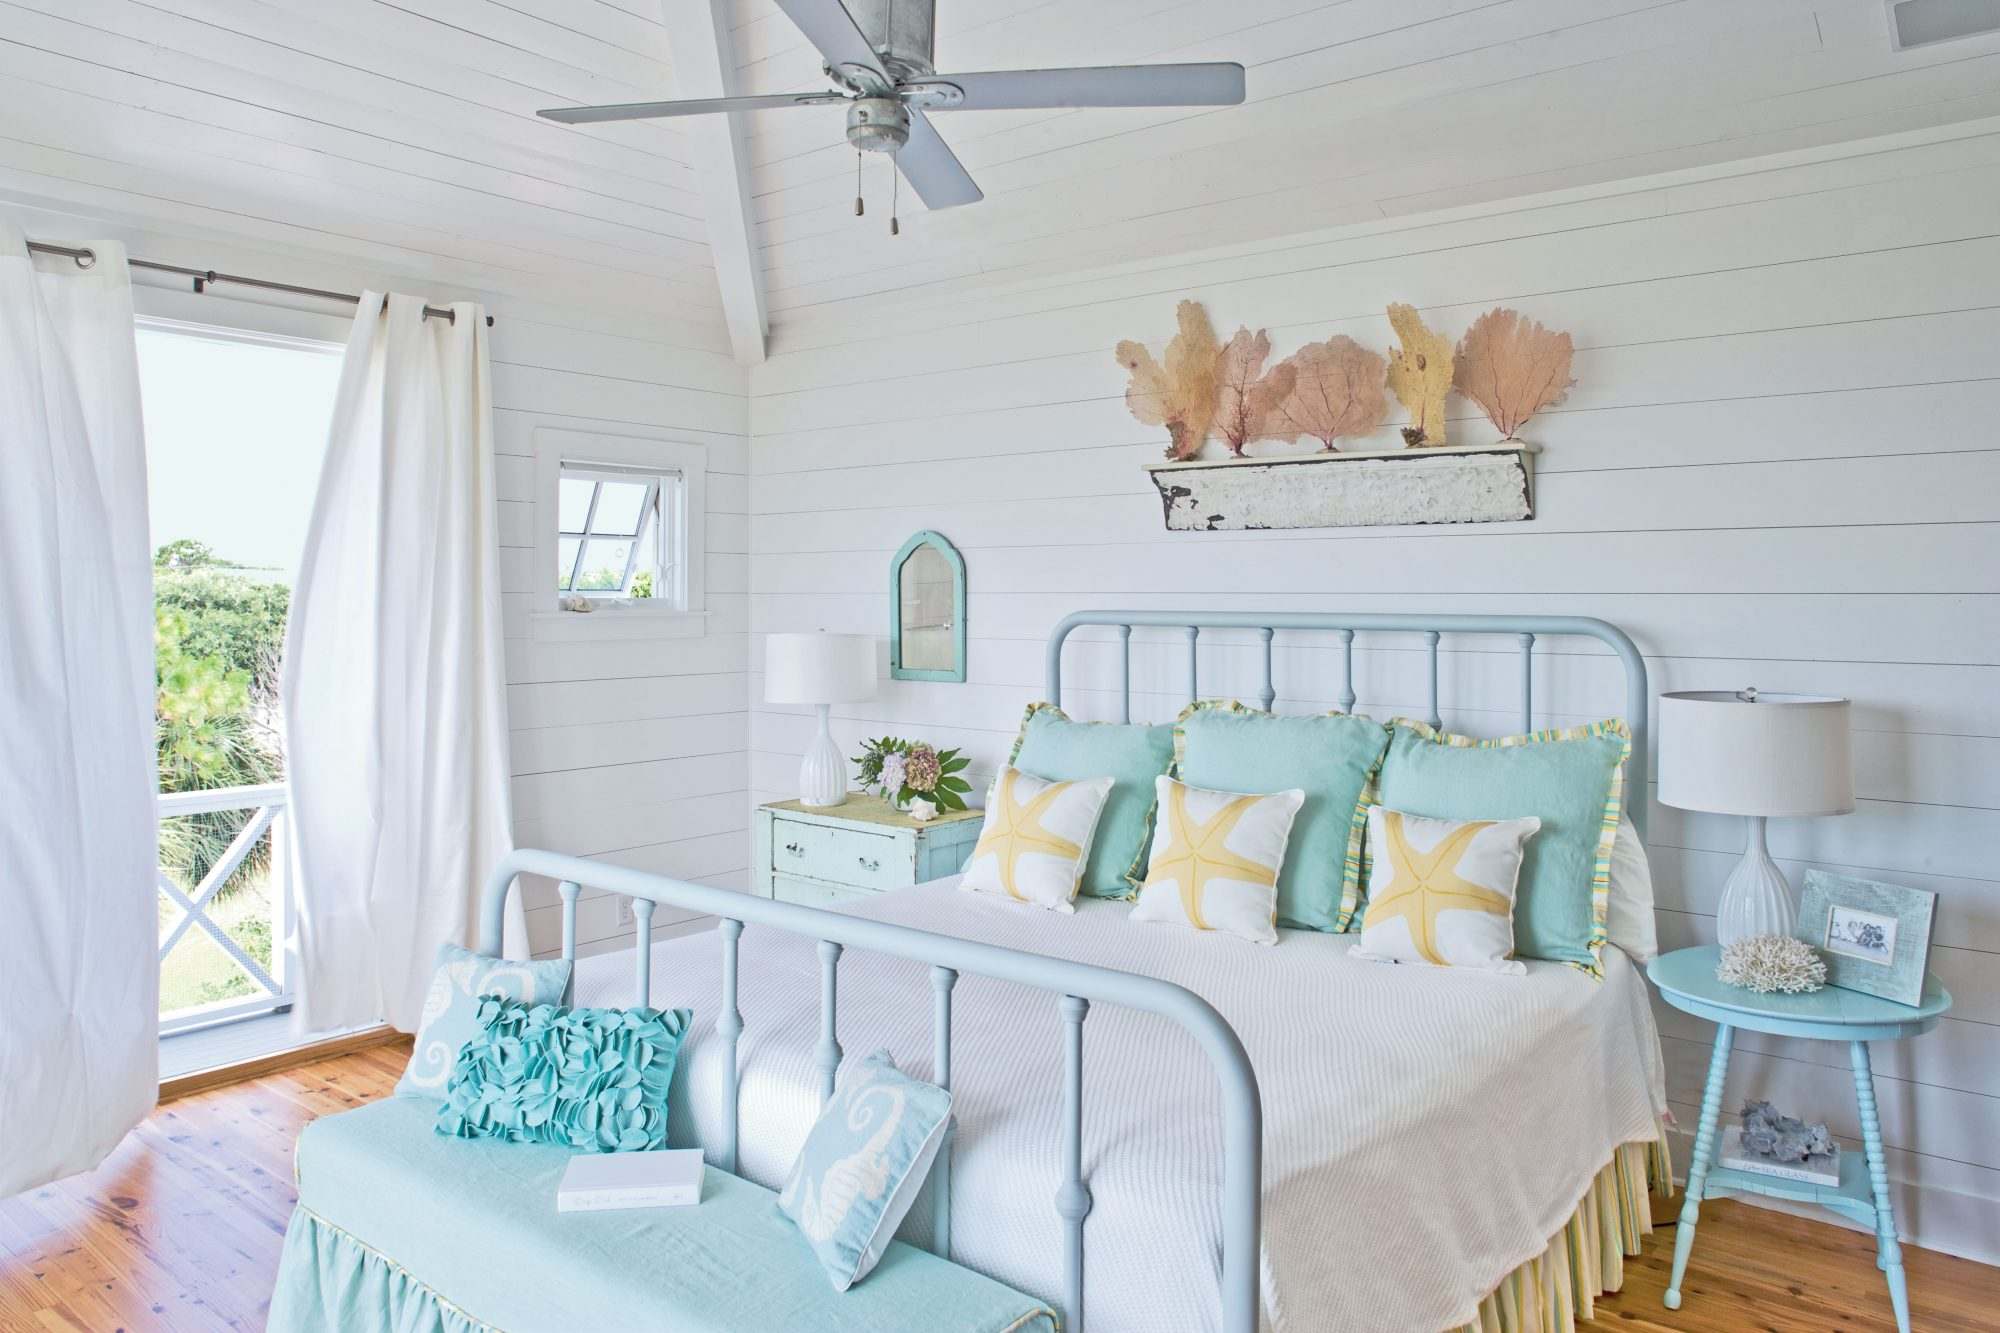 Soothing pastels have a universal appeal, especially in a coastal setting where relaxation is key. Colors that reflect the beach are a natural fit with these decorative coral accents and parading sea star pillows.